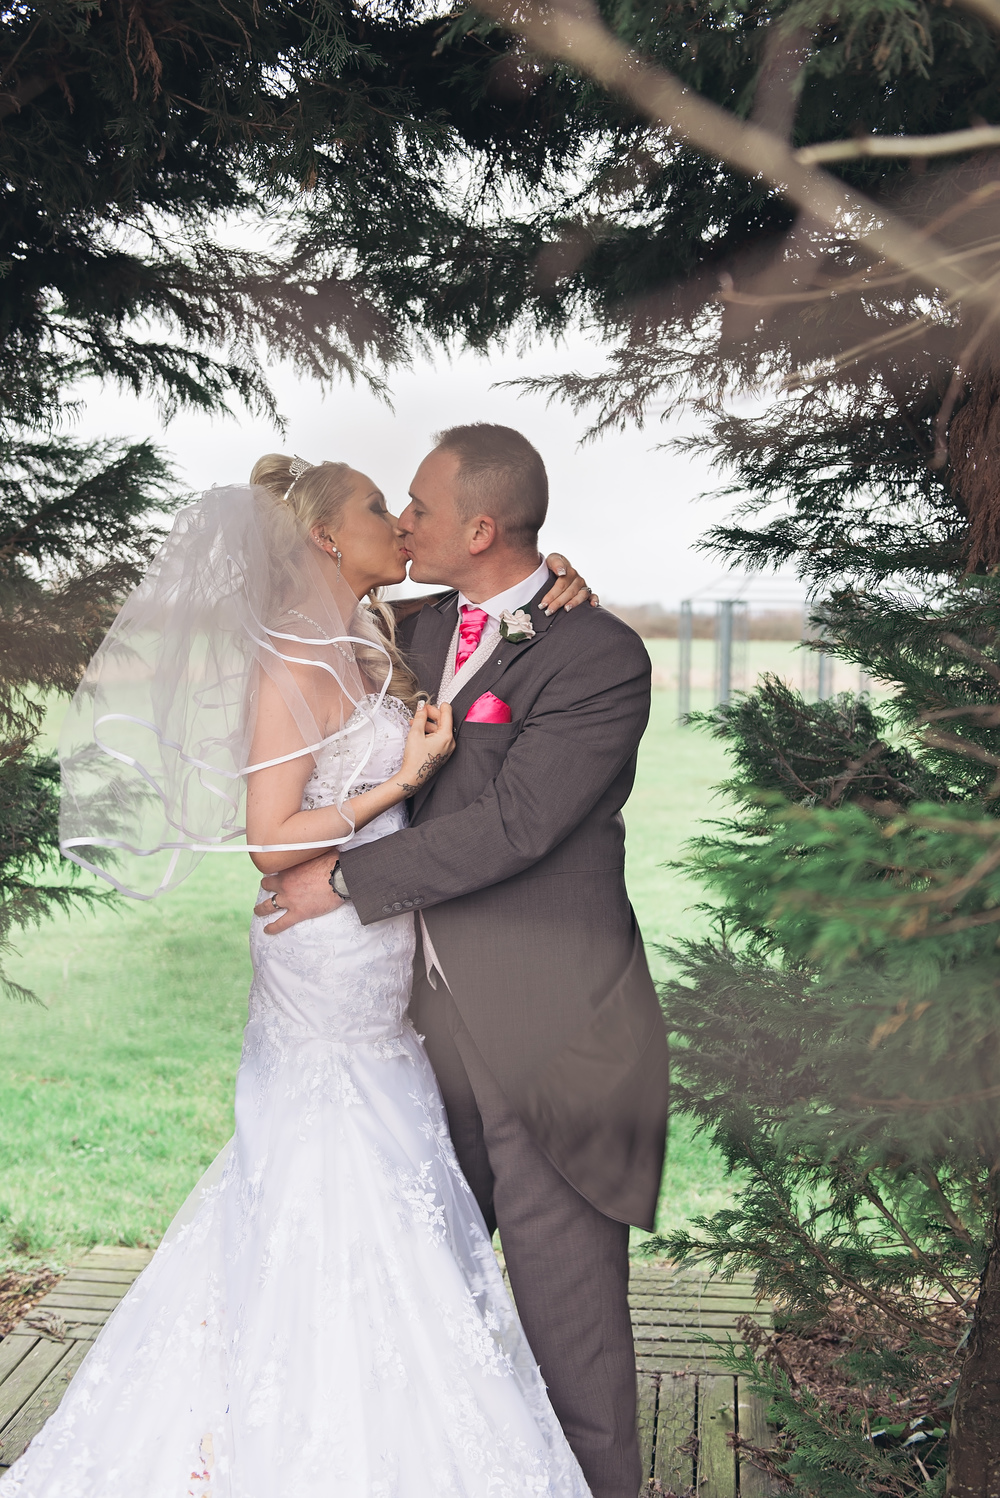 Clare and Chriss Wedding - 13.02.2016-300.jpg